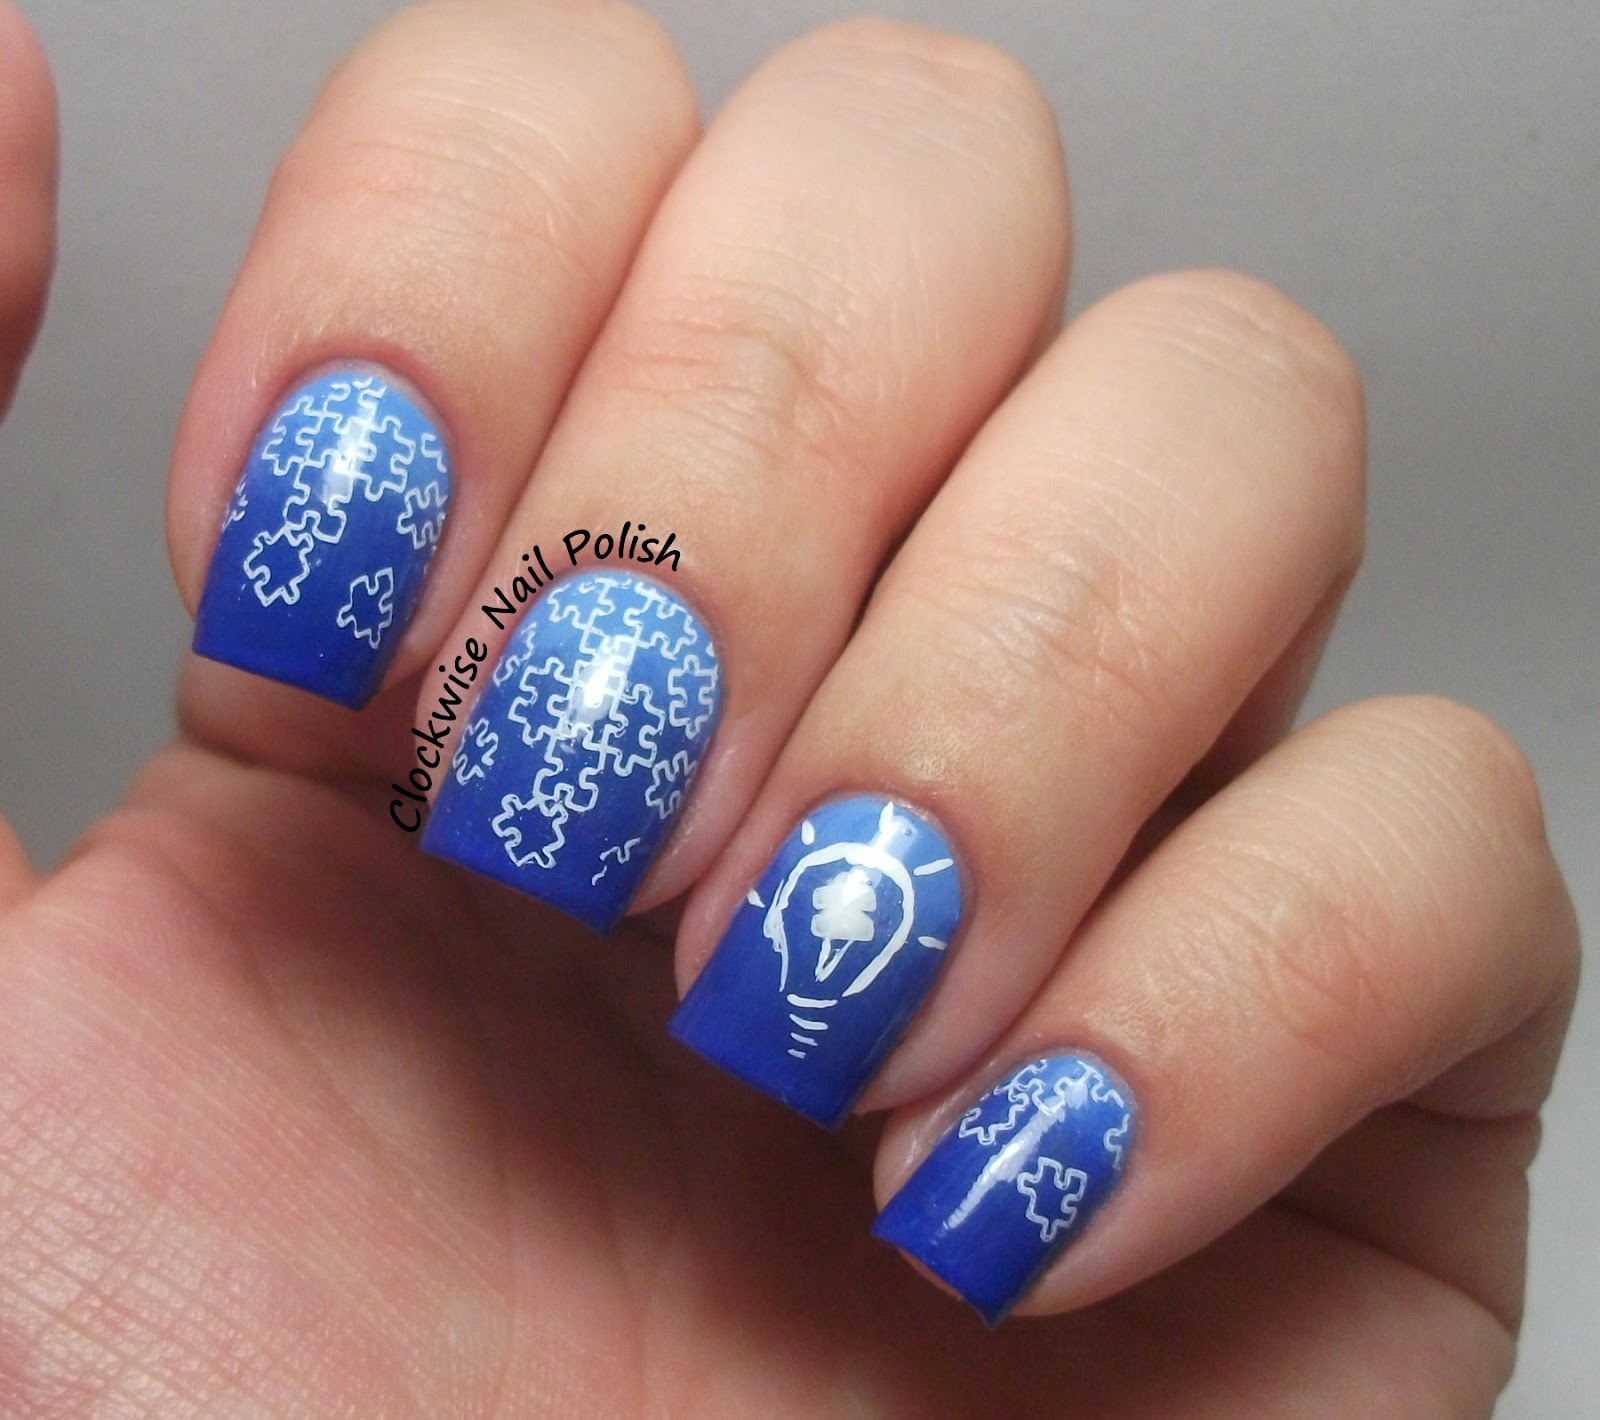 The clockwise nail polish light it up blue movement autism the clockwise nail polish light it up blue movement autism awareness nail art prinsesfo Images